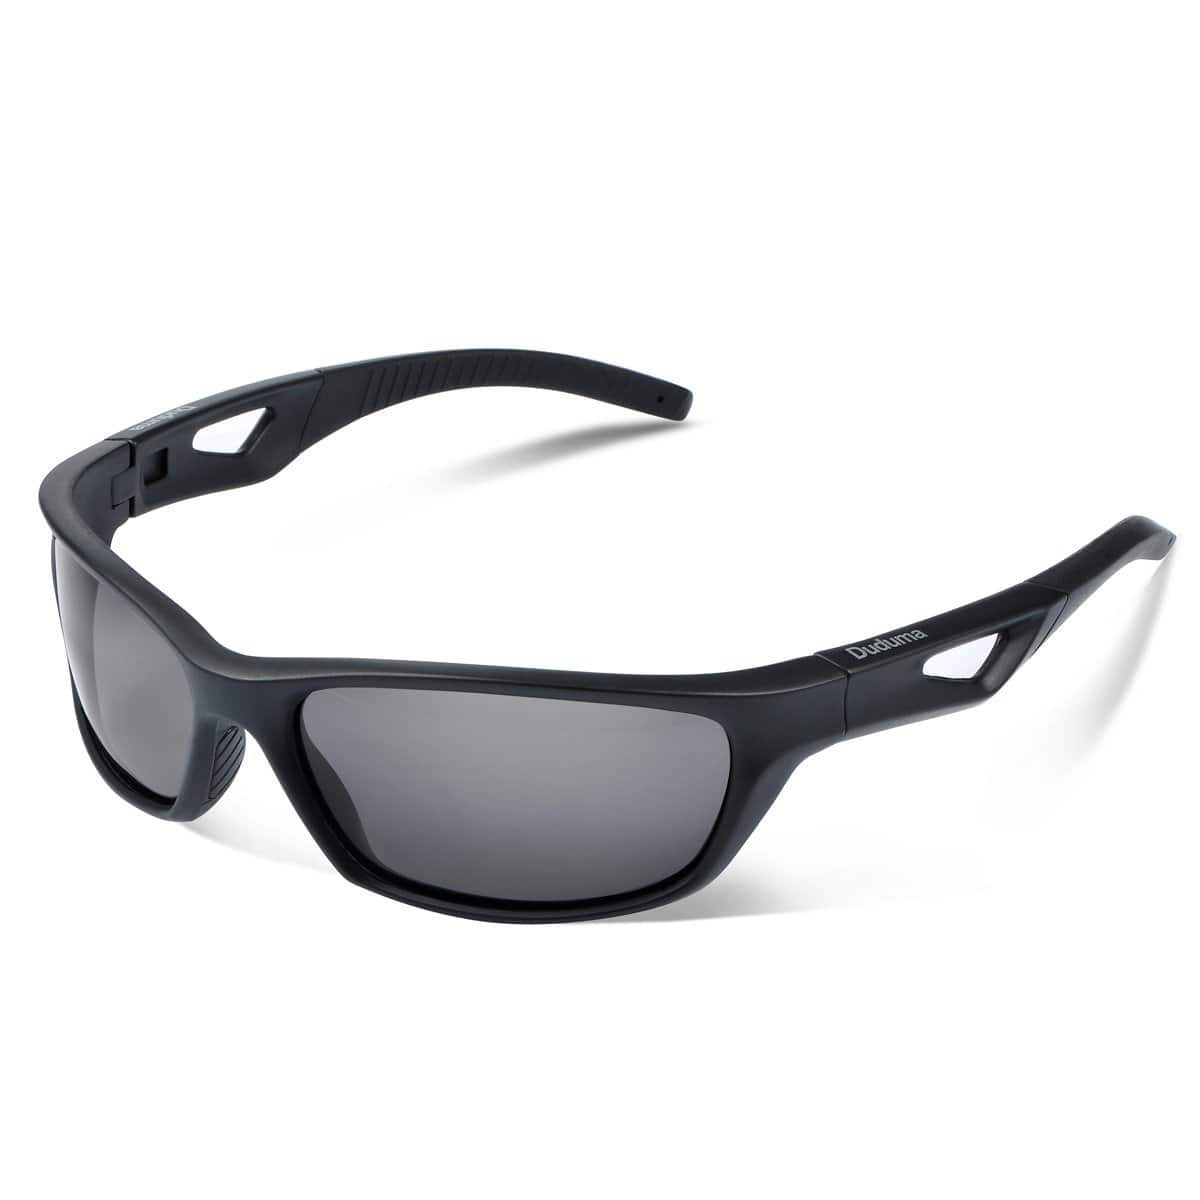 Polarized Sports Sunglasses for Men & Women @ Amazon - $9.99 Free Shipping